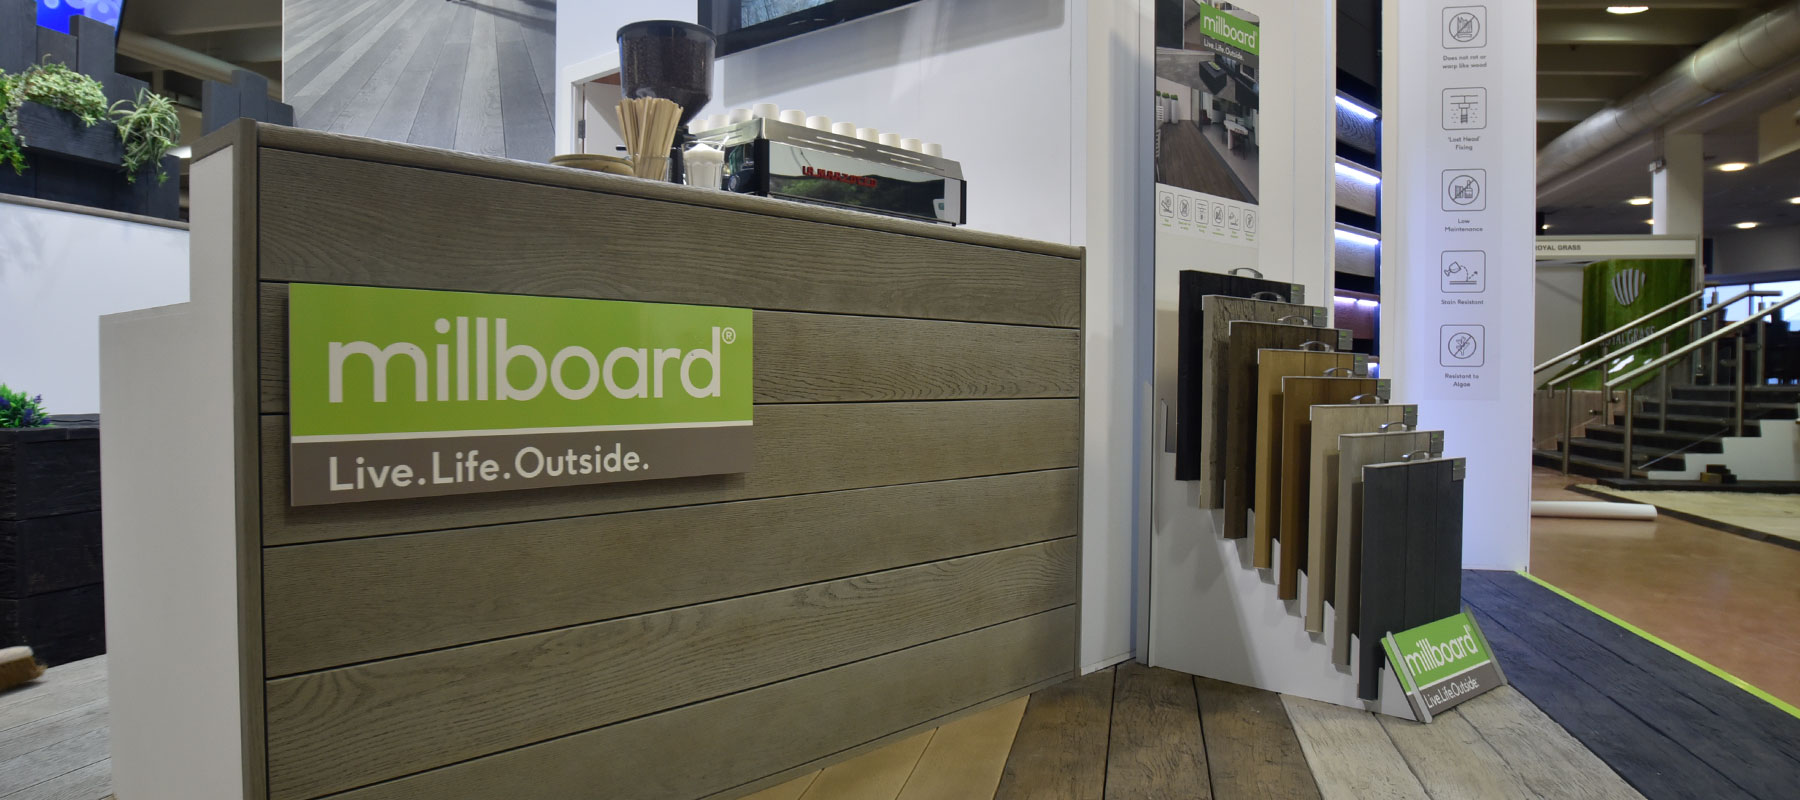 Millboard Exhibition Stand by Merit Display